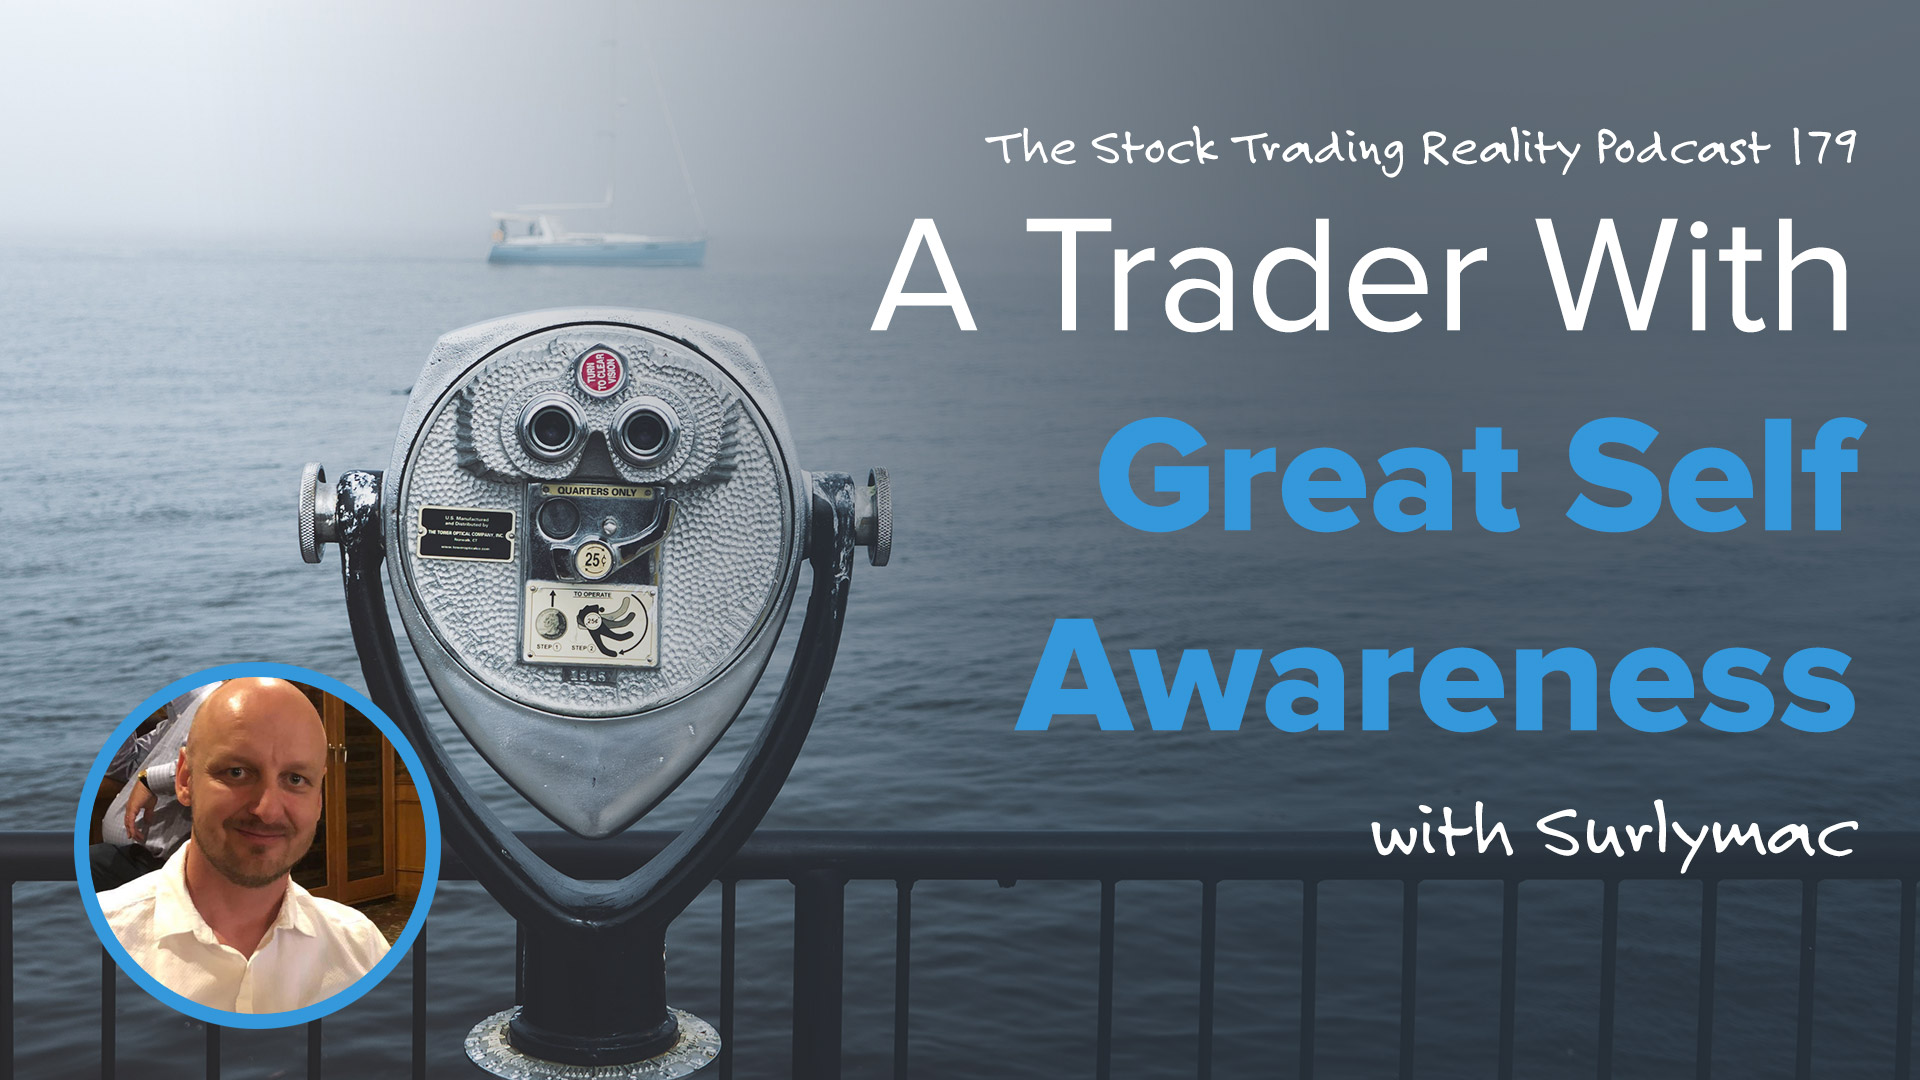 STR 179: A Trader With Great Self Awareness